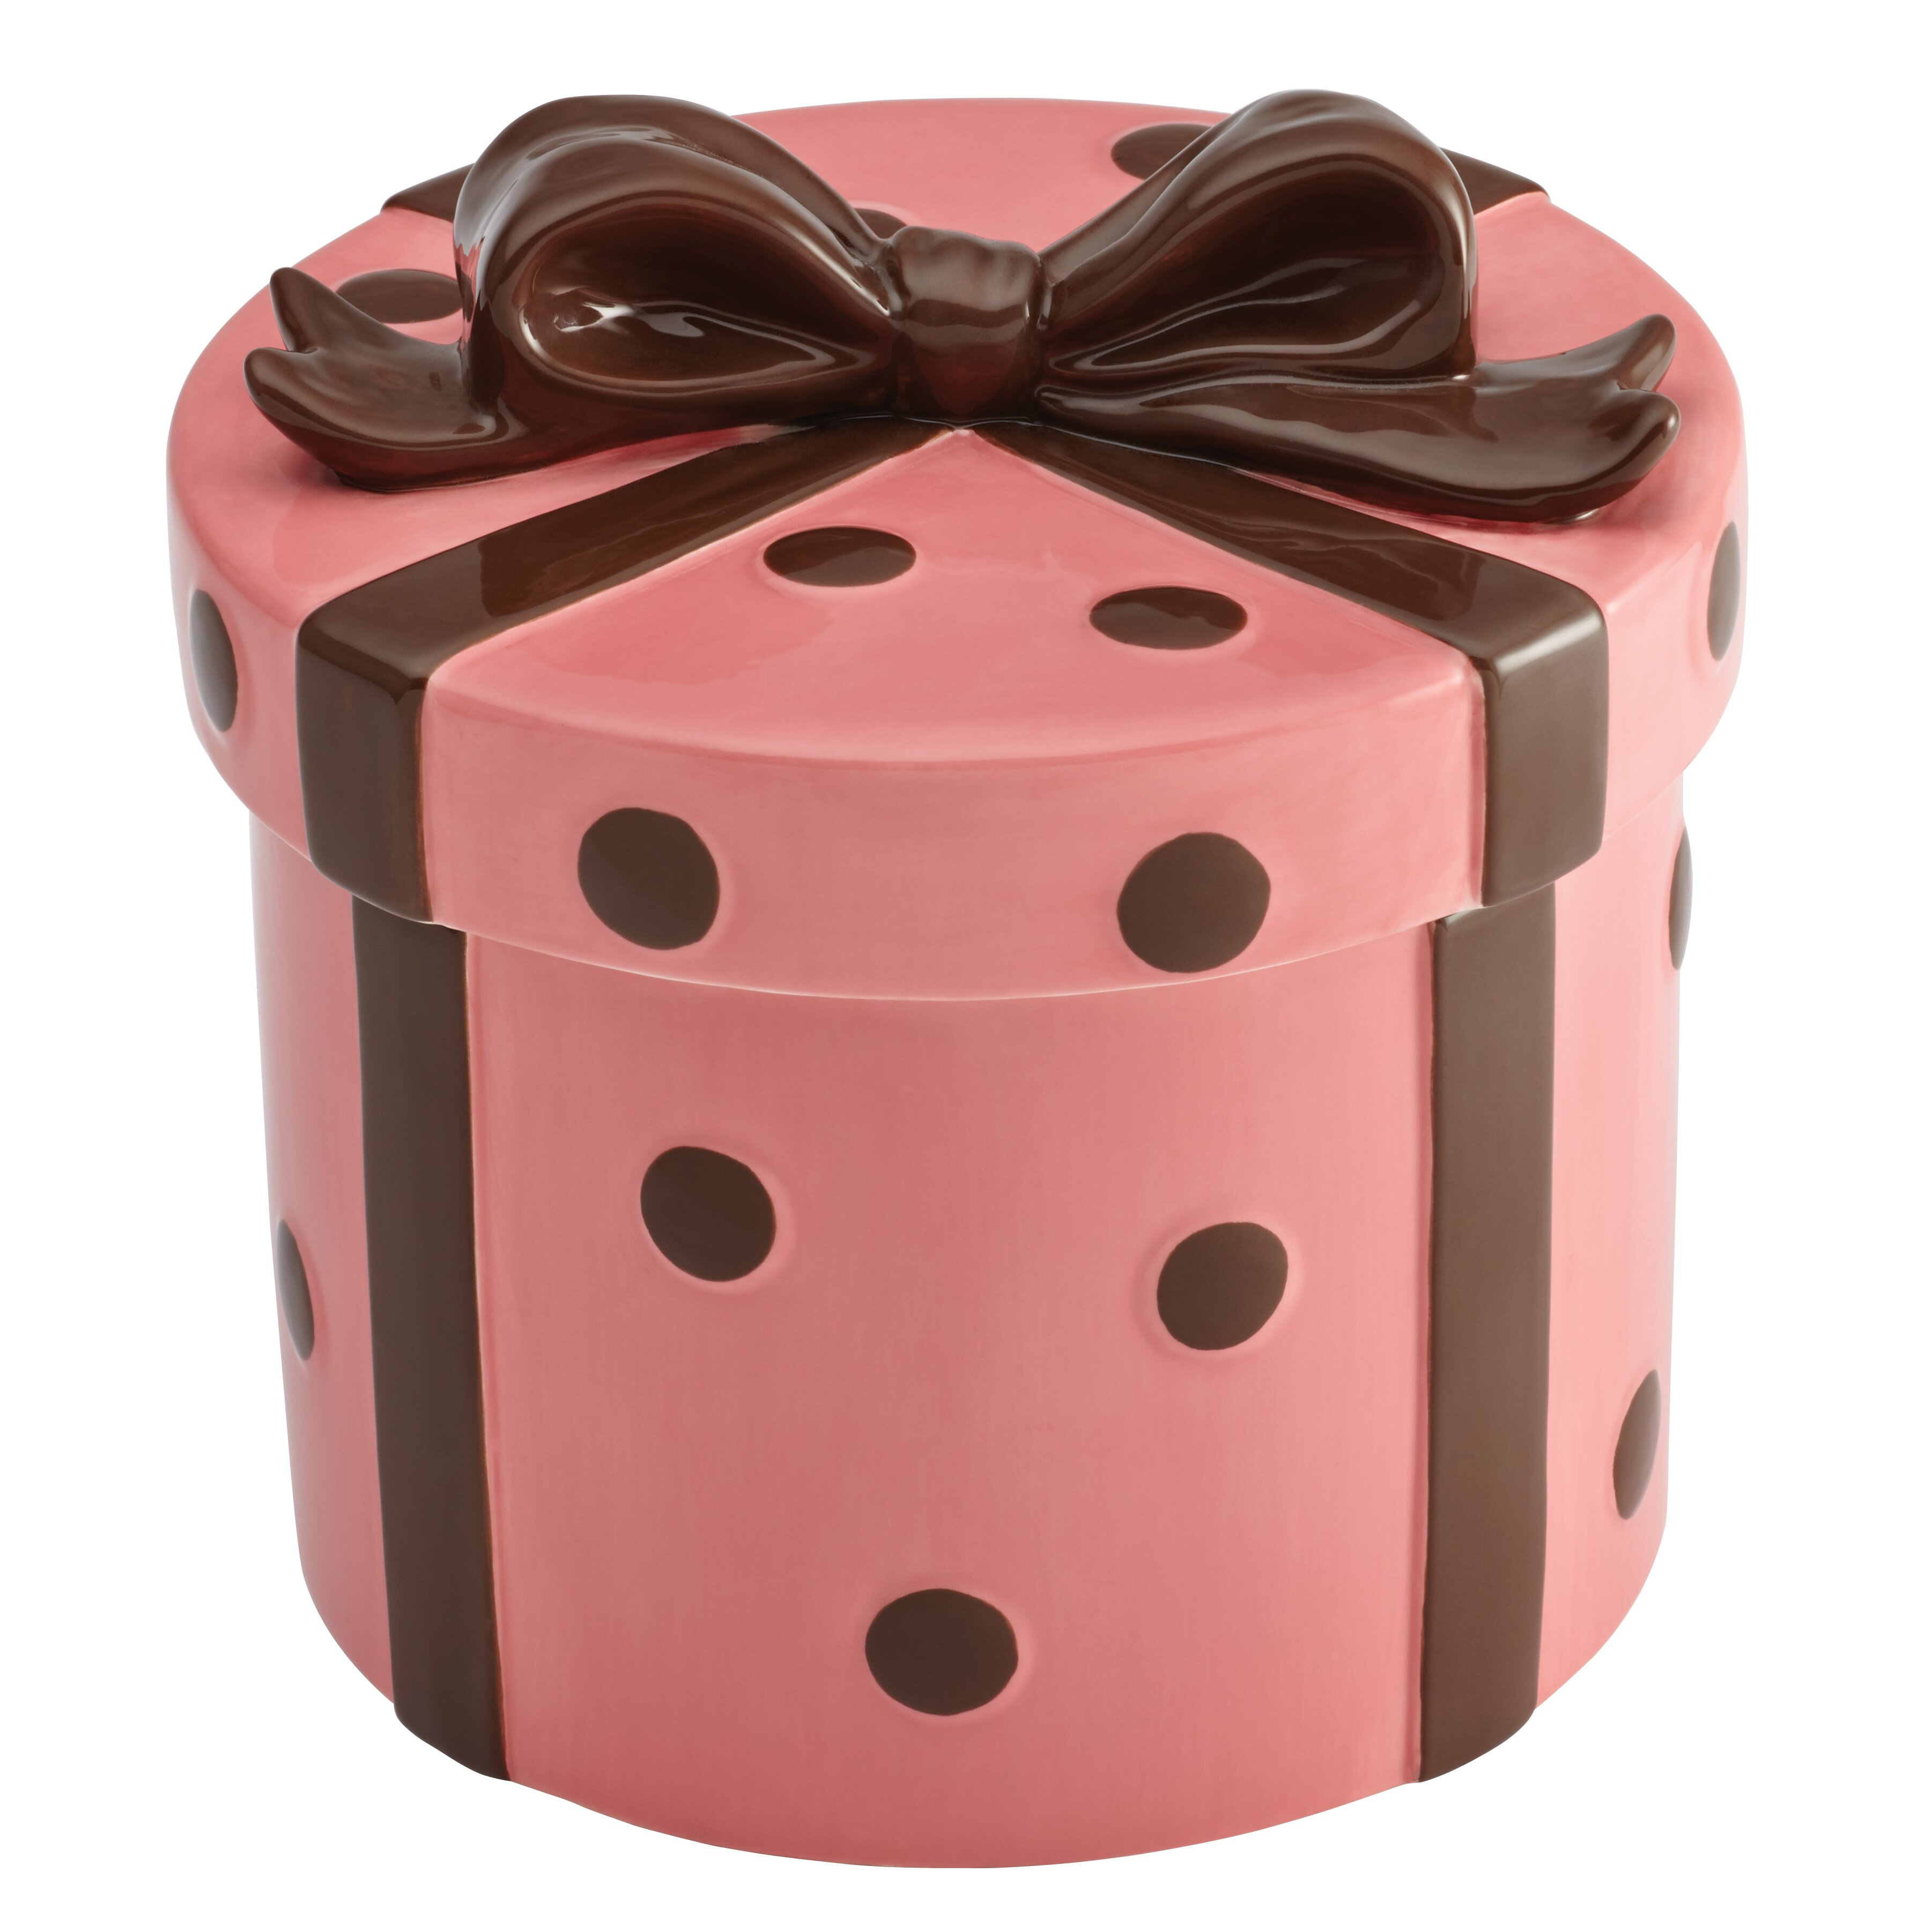 Cake Boss Novelty Cookie Jar Reviews Wayfair Uk